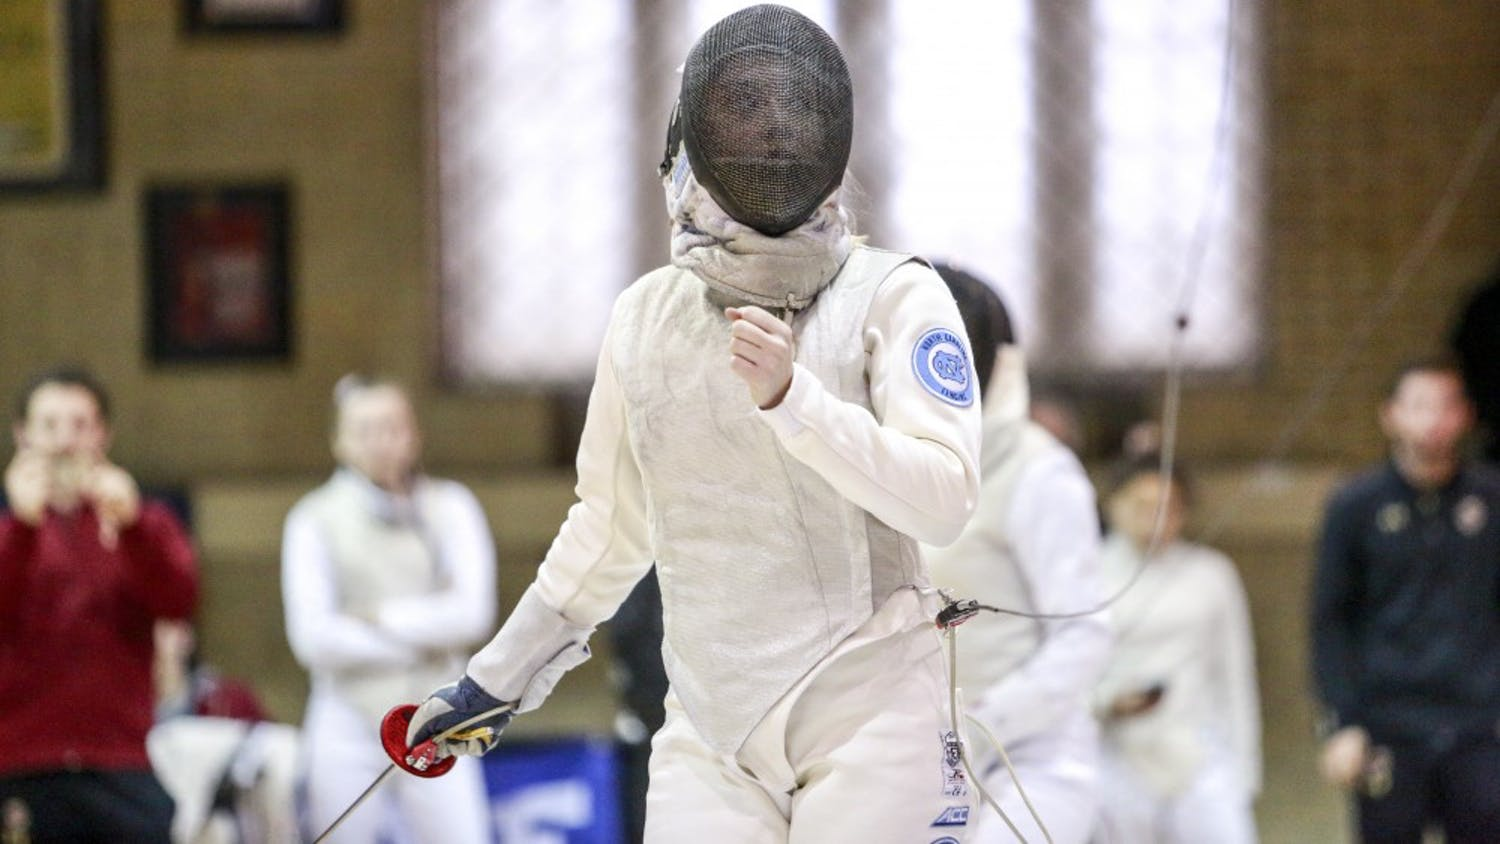 UNC's Sydney Persing fences with Boston College's Vivian Li during the women's fencing match in Card gym at Duke University on Sunday, Feb. 10 2018.